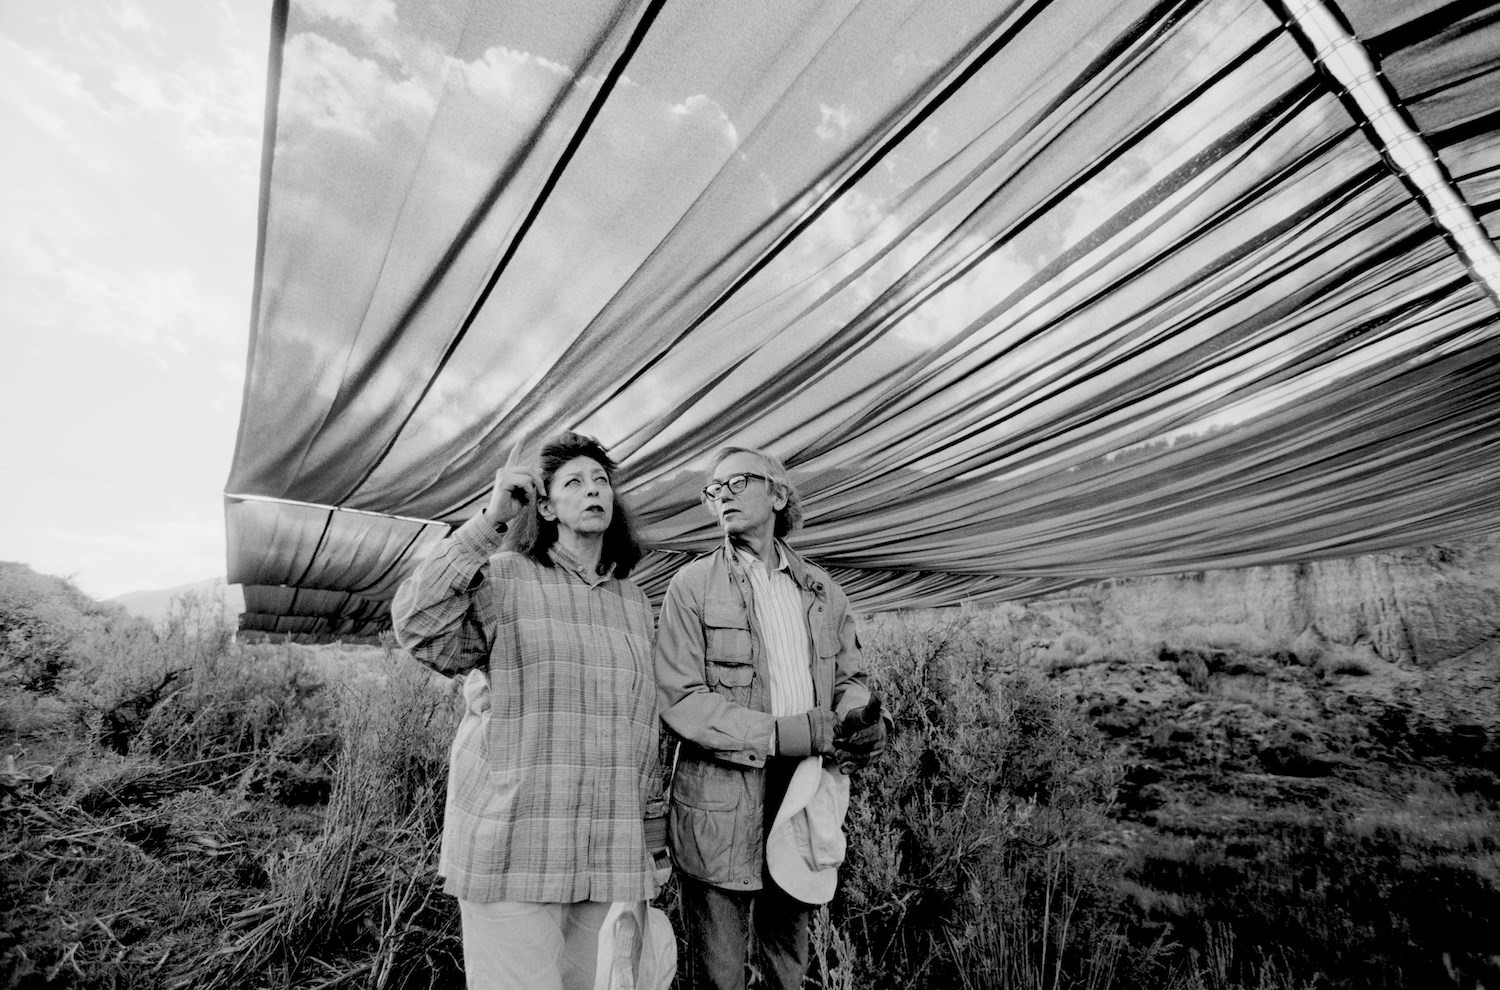 Over The River - Christo and Jeanne-Claude during